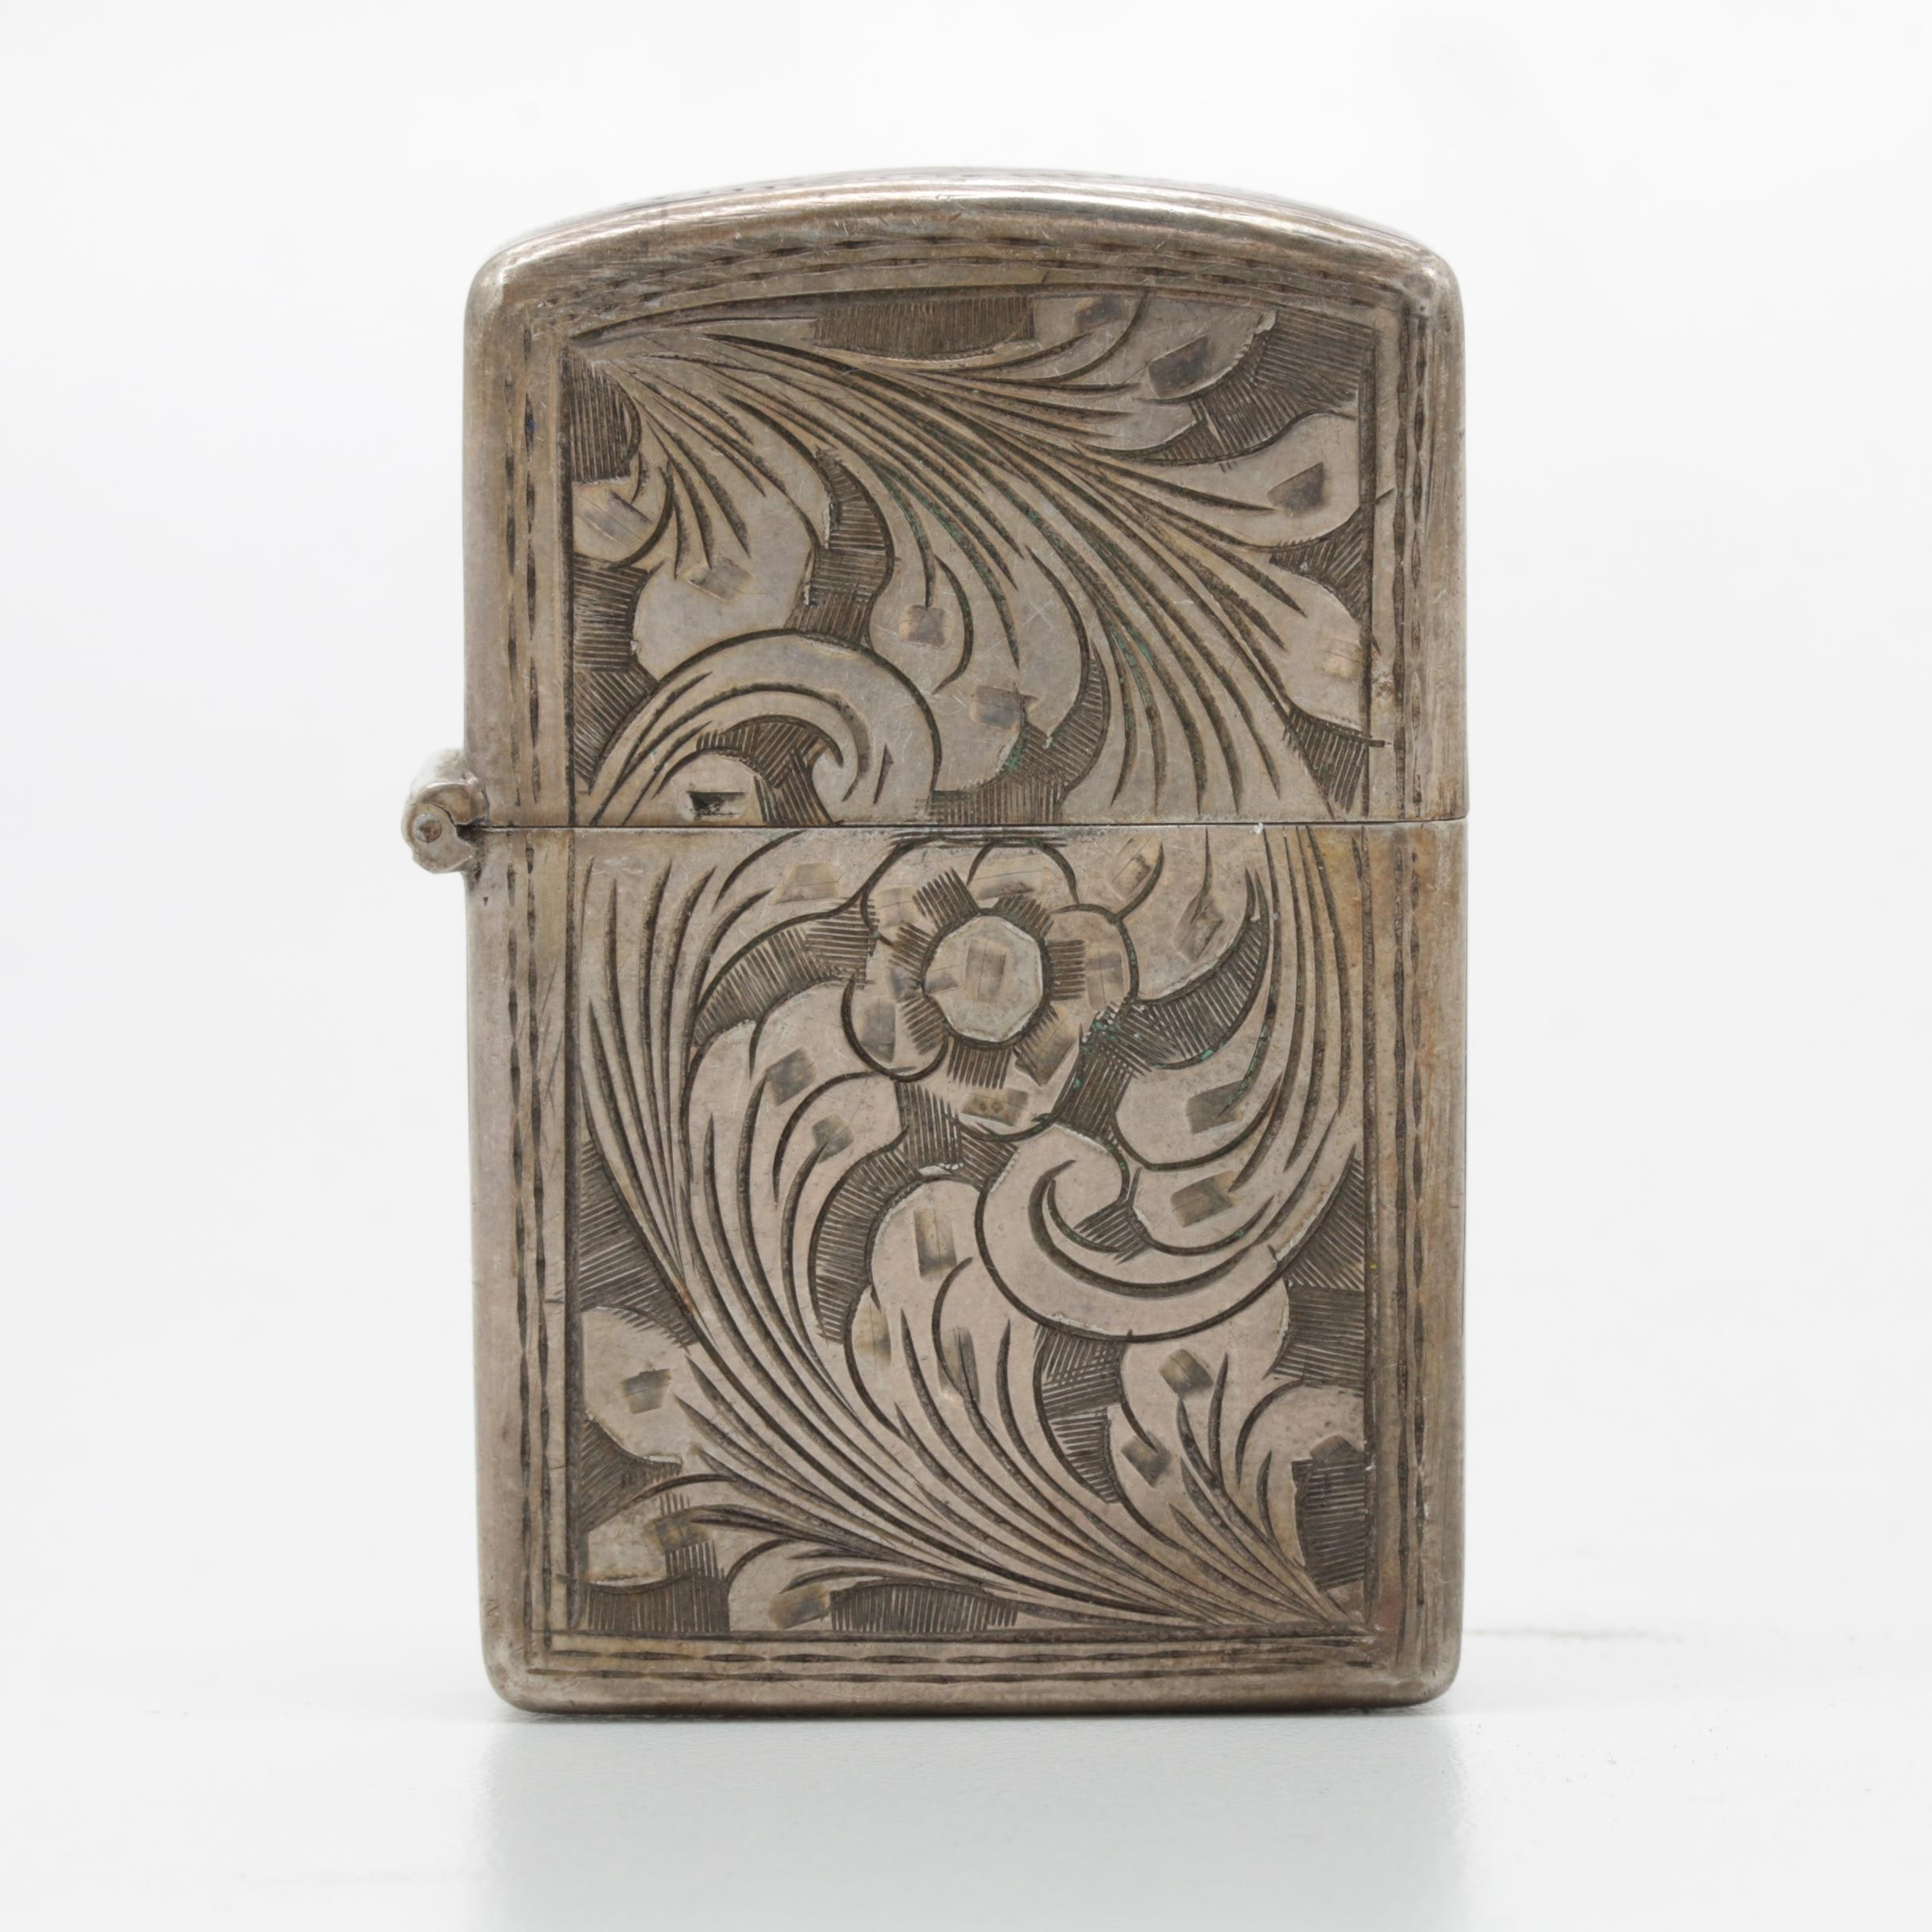 800 Silver Etched Lighter